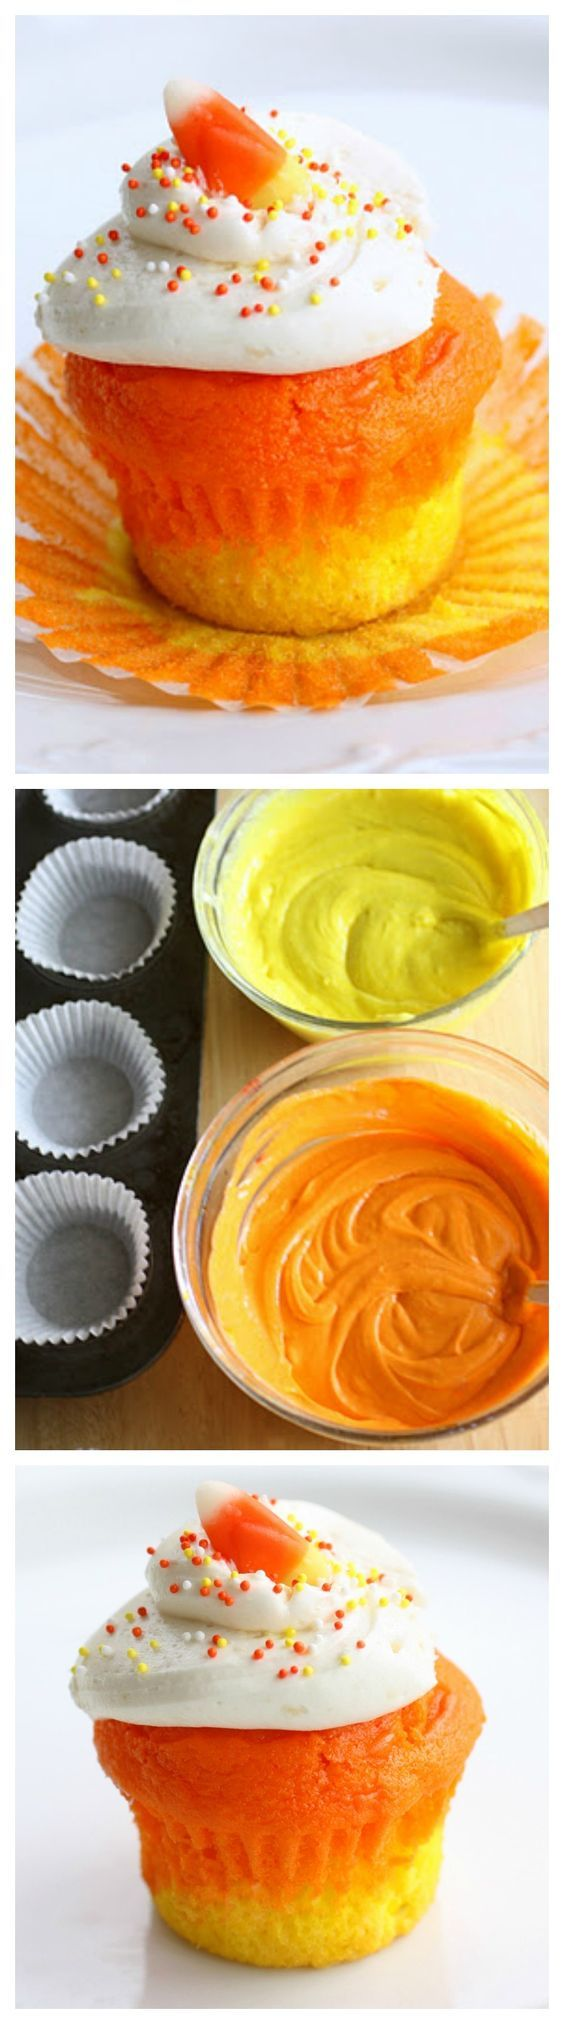 Candy Corn Cupcakes - a doctored cake mix makes these super moist candy corn colored cupcakes. Great for Halloween. the-girl-who-ate-everything.com (Halloween Cake Diy)